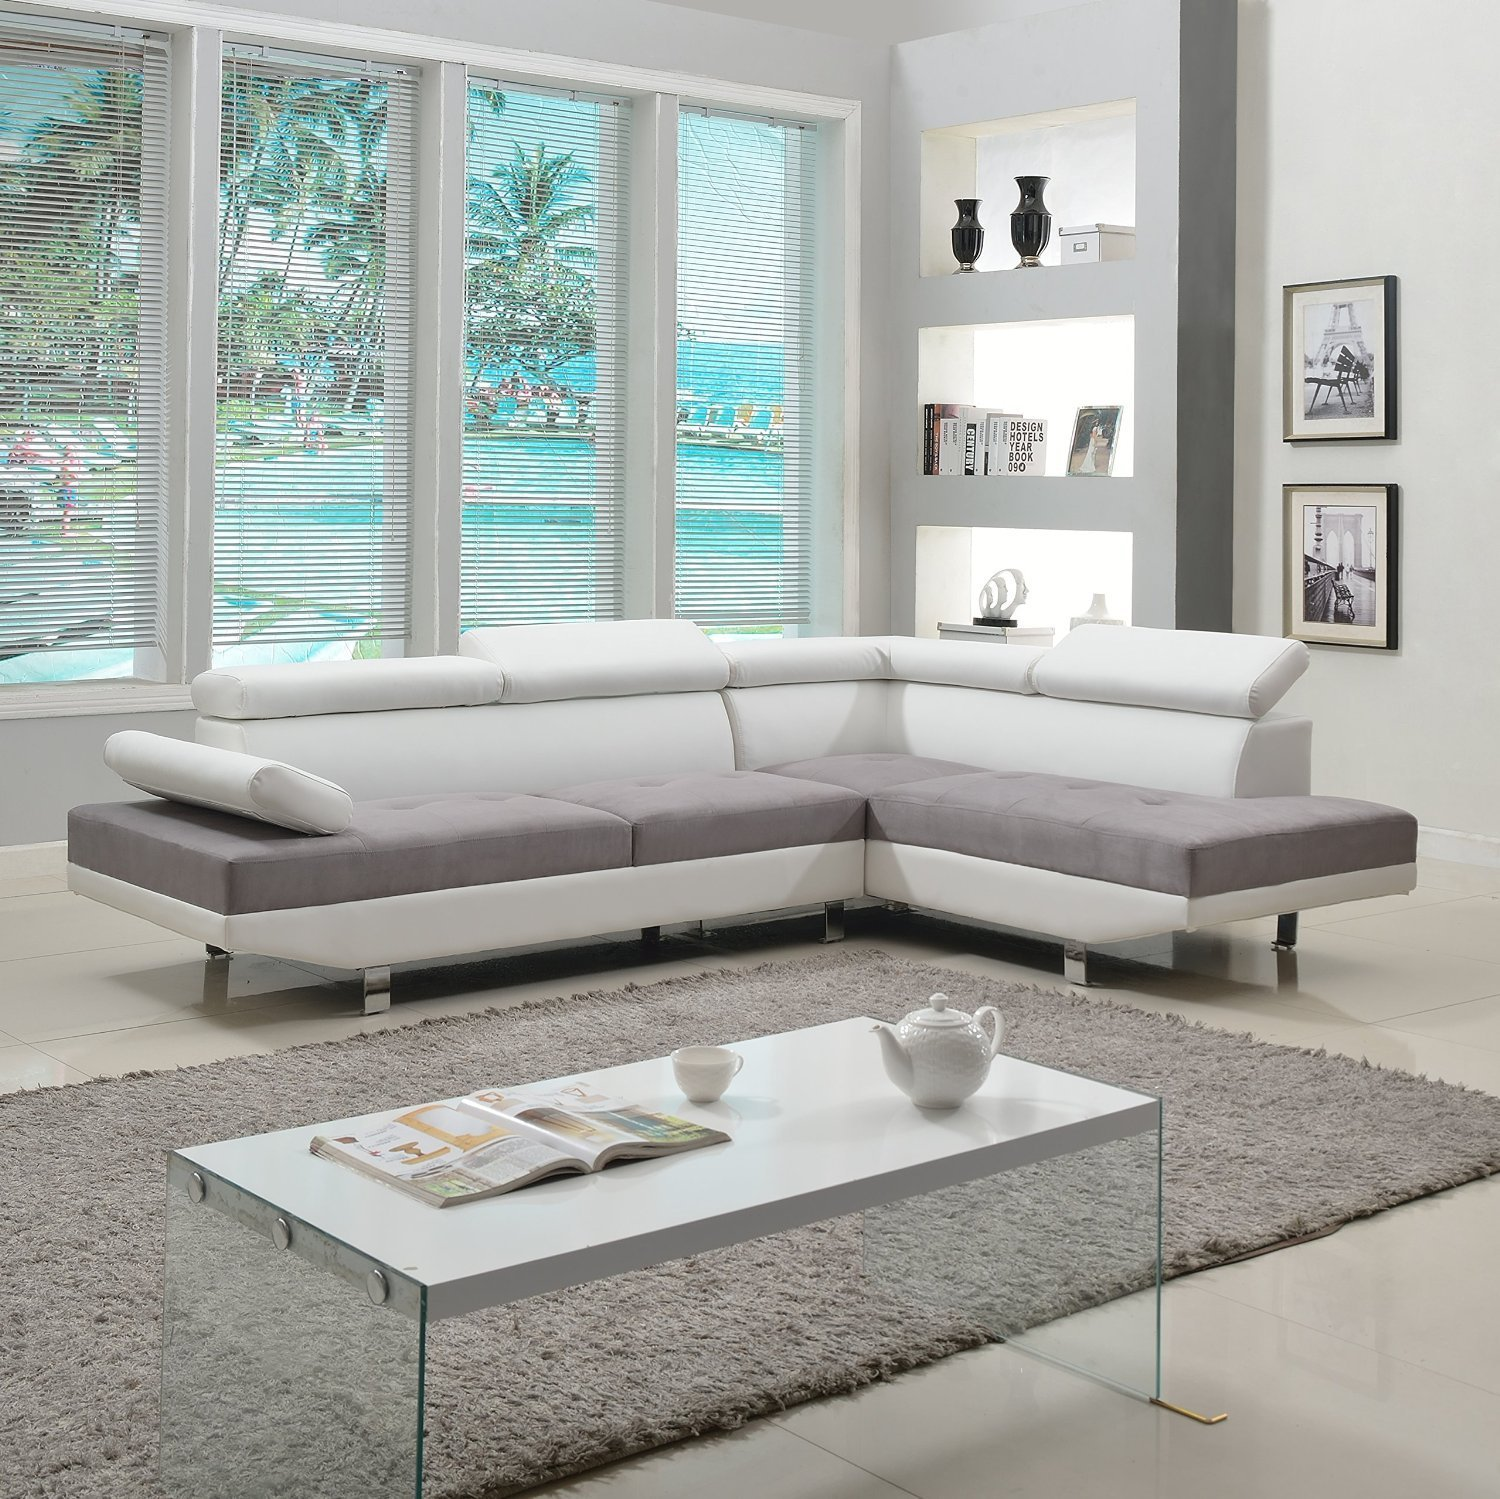 Modern living room furniture review find the best one for Modern sitting room furniture